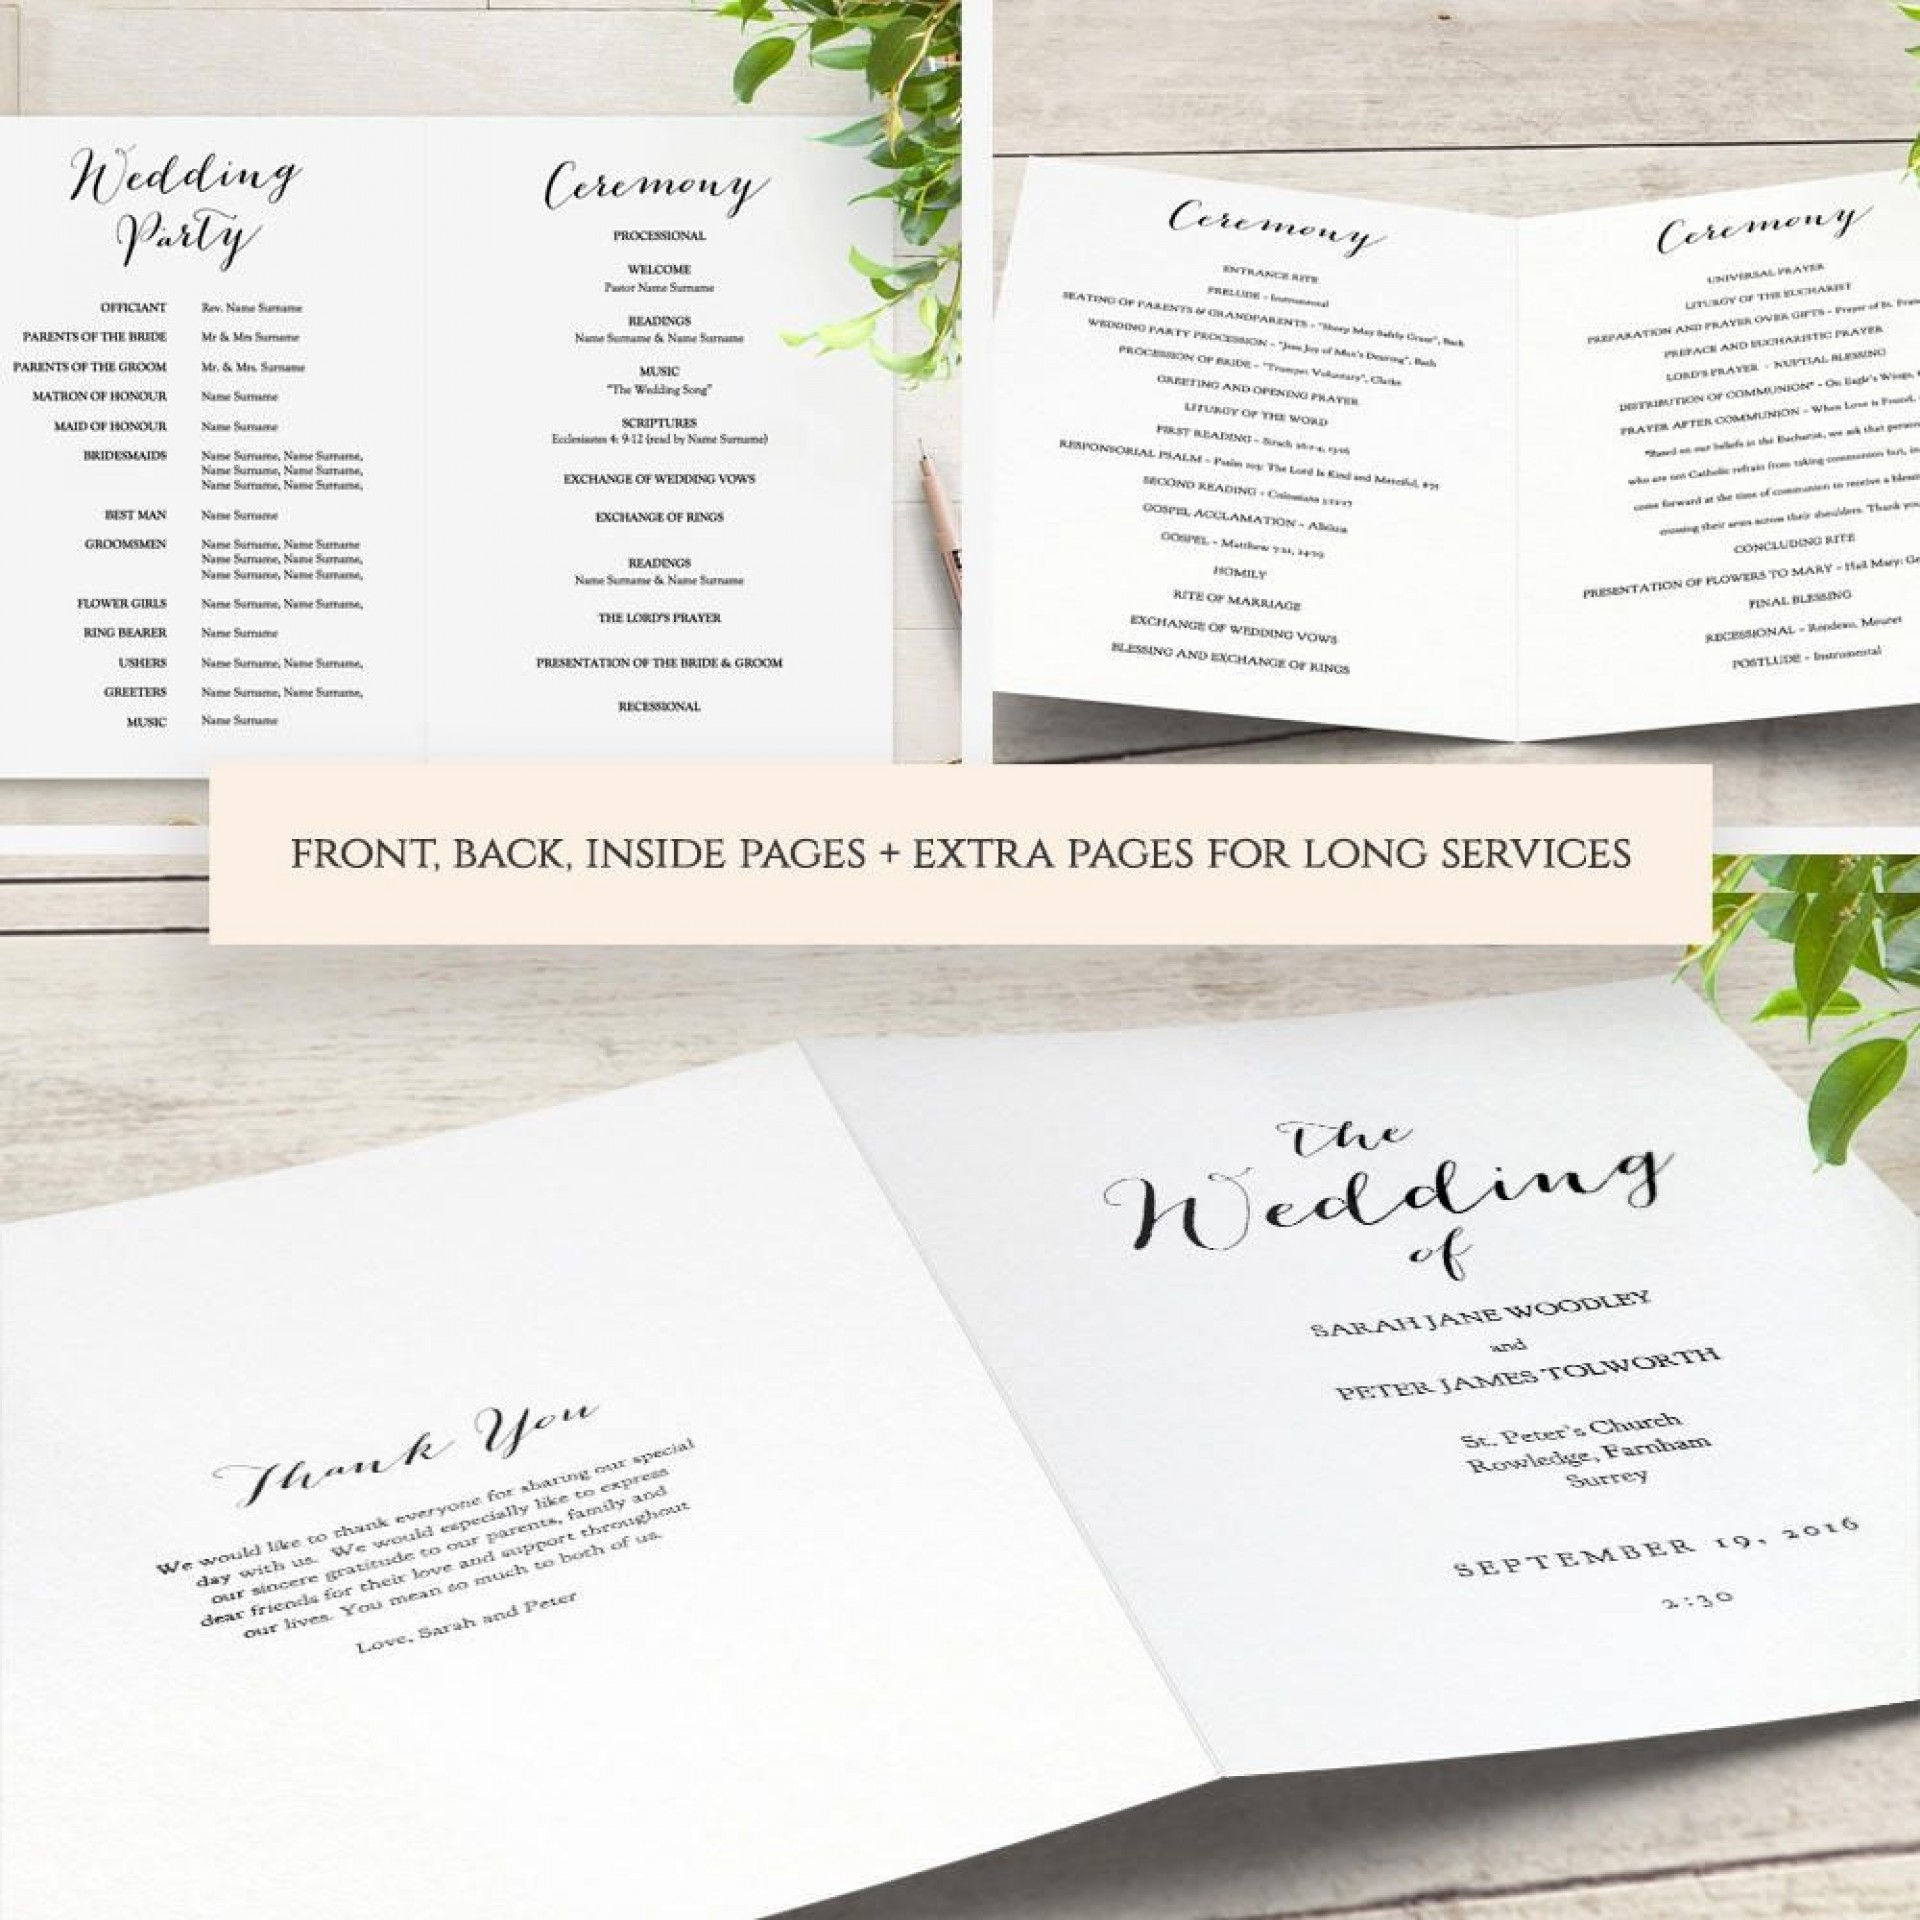 003 Awesome Free Wedding Order Of Service Template Microsoft Word Inspiration 1920